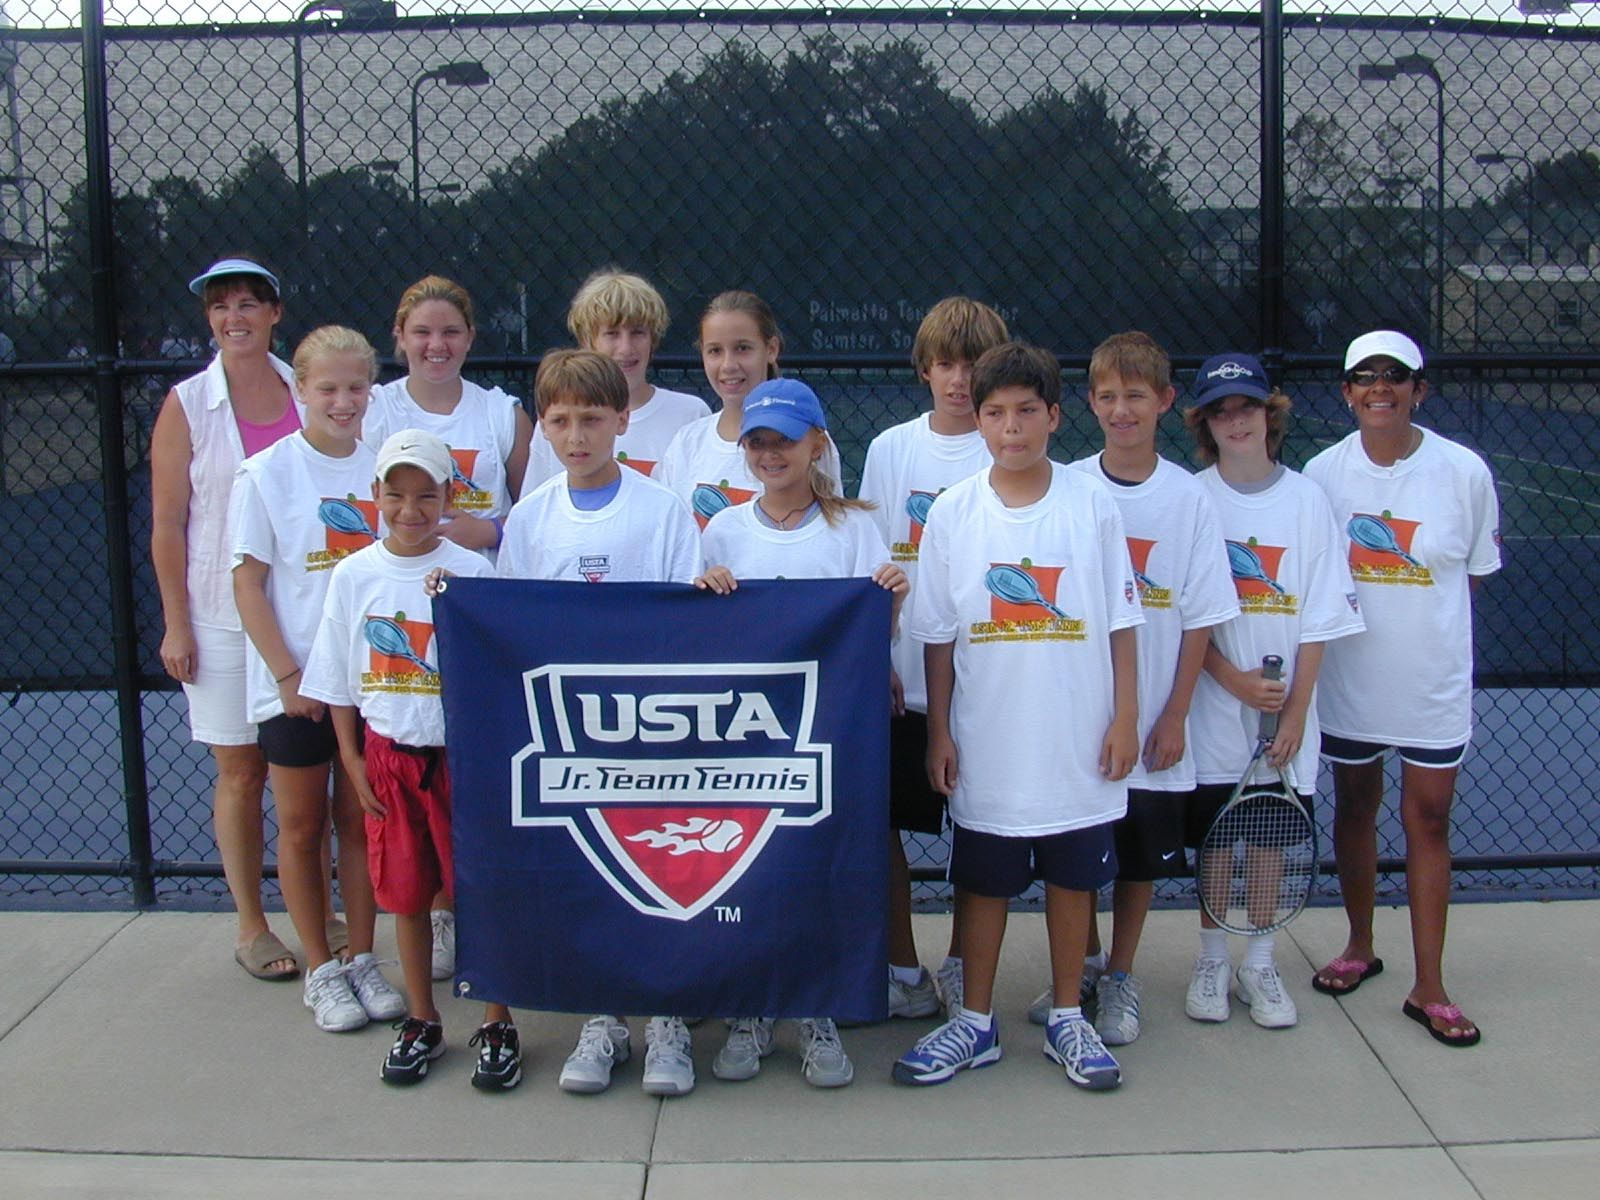 2006 Junior Team Tennis Tournament Club Crashers